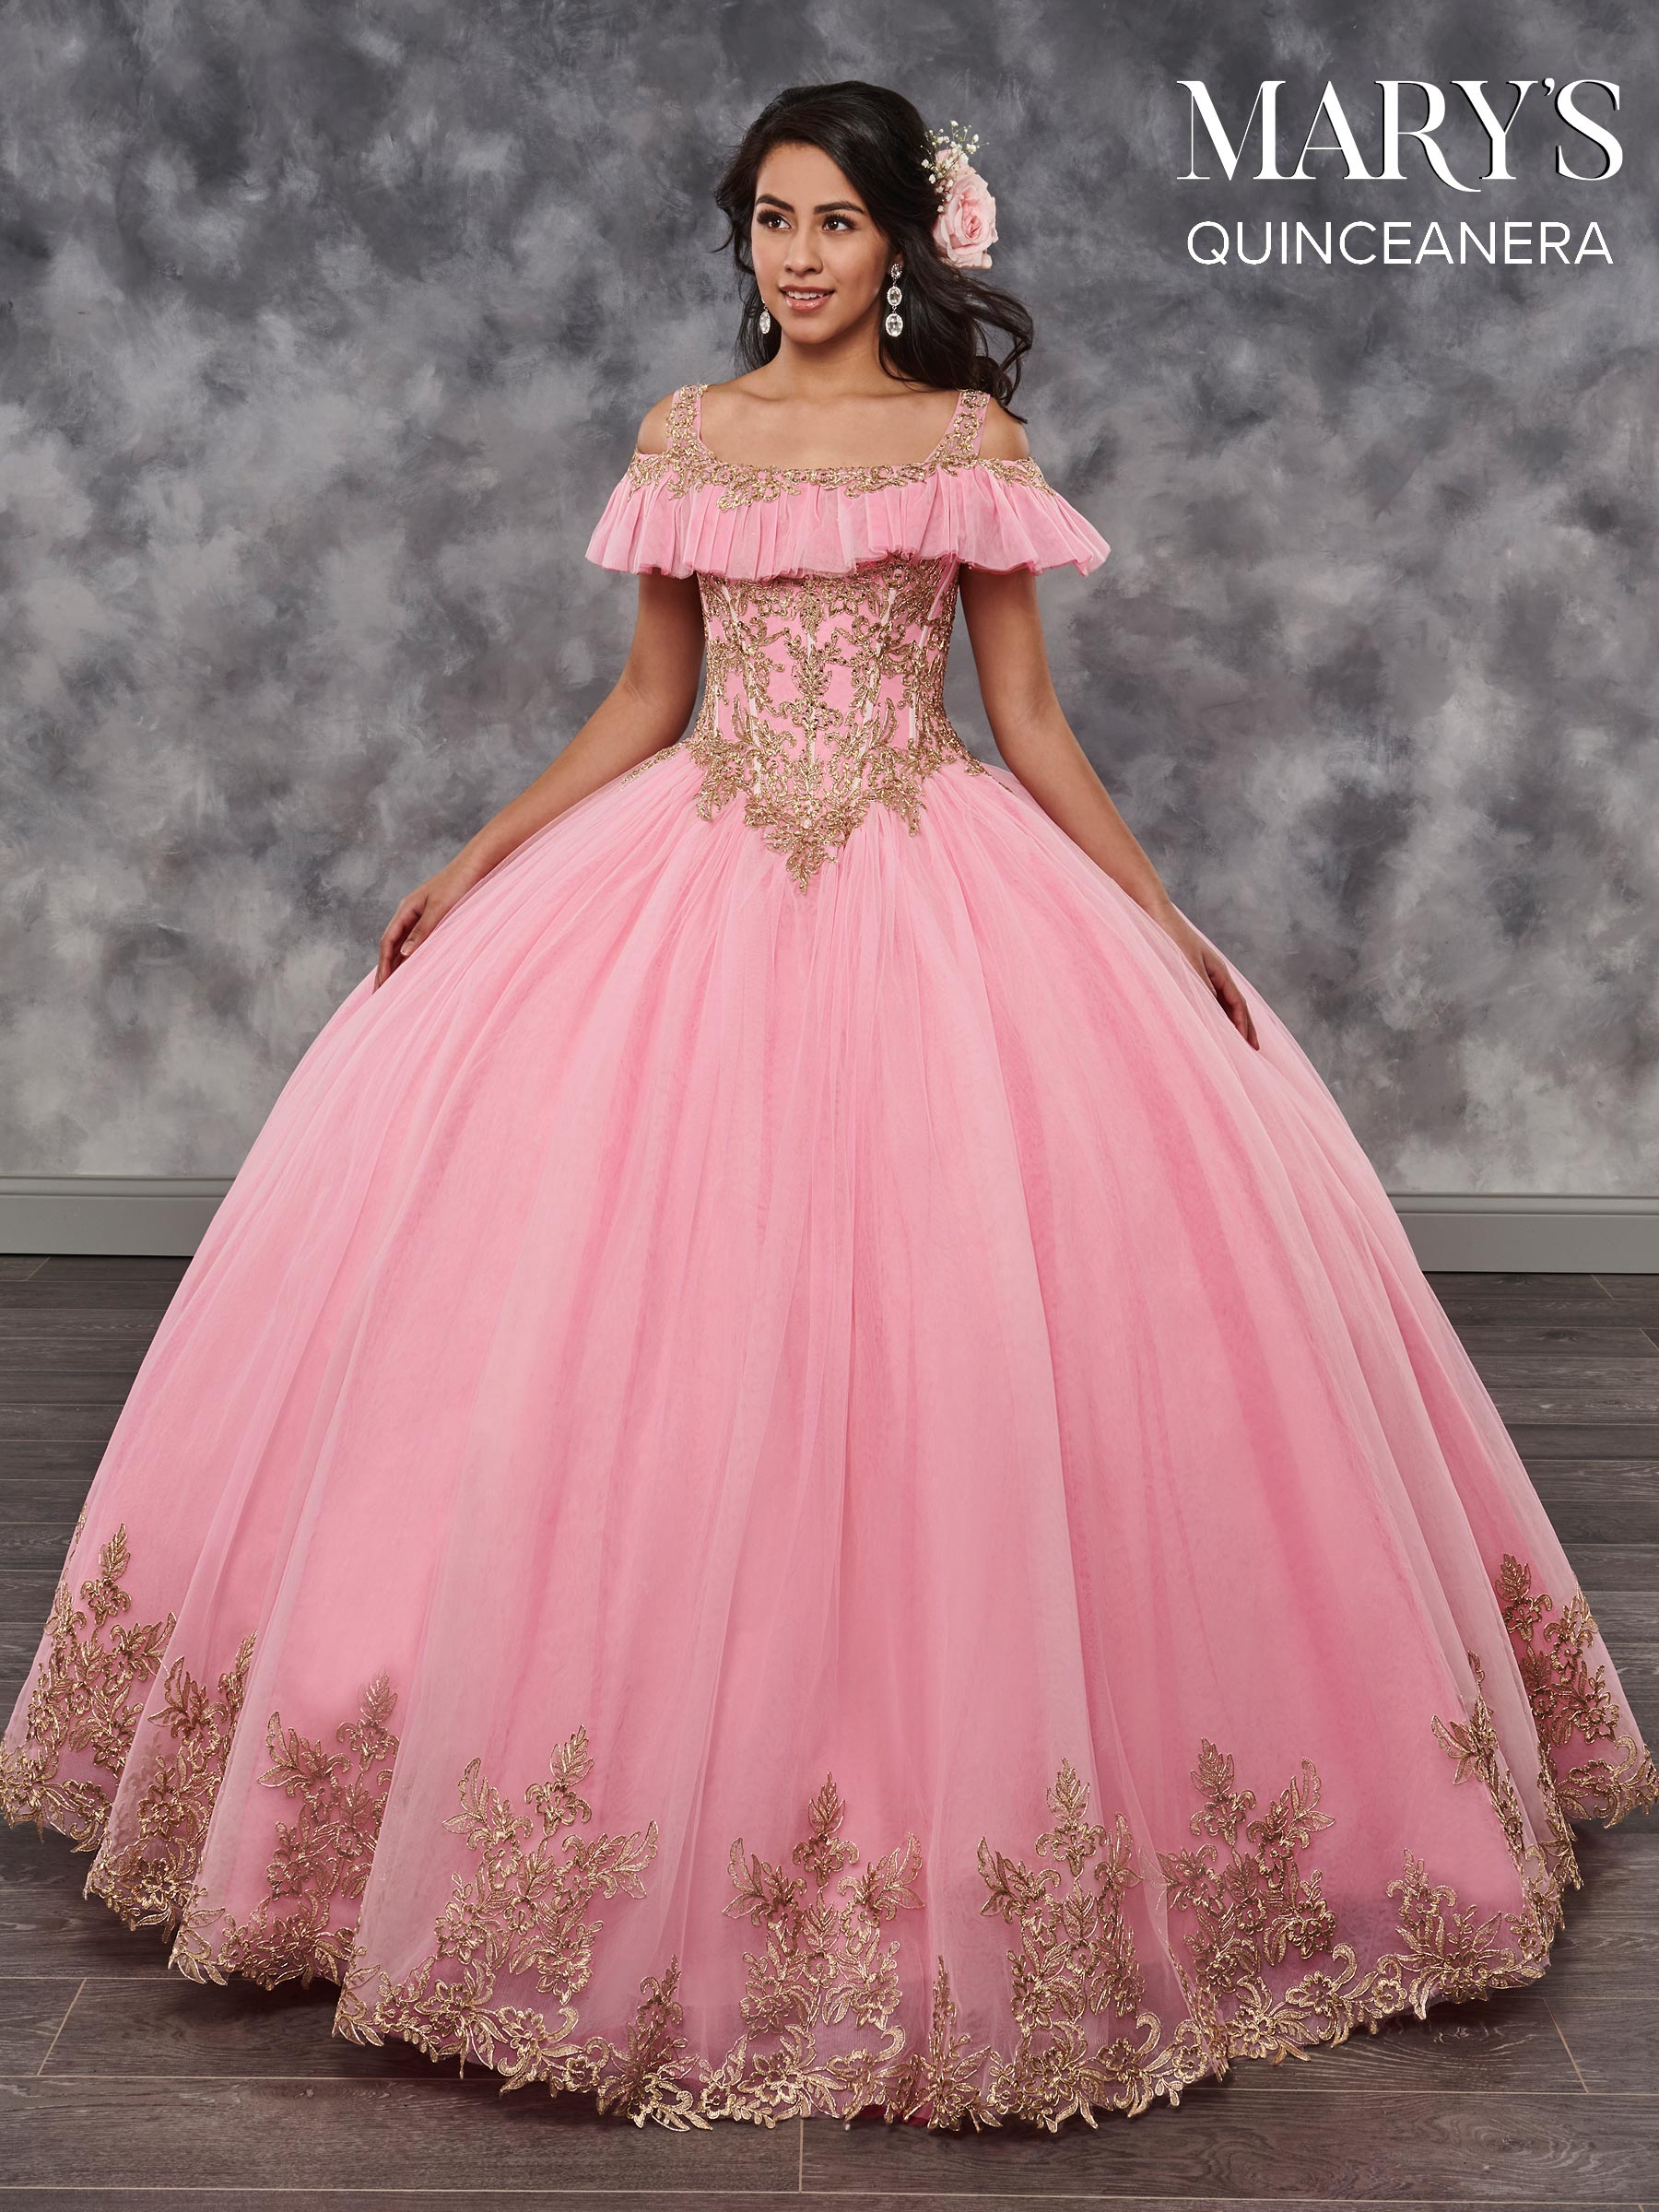 Marys Quinceanera Dresses | Mary's Quinceanera | Style - MQ1026